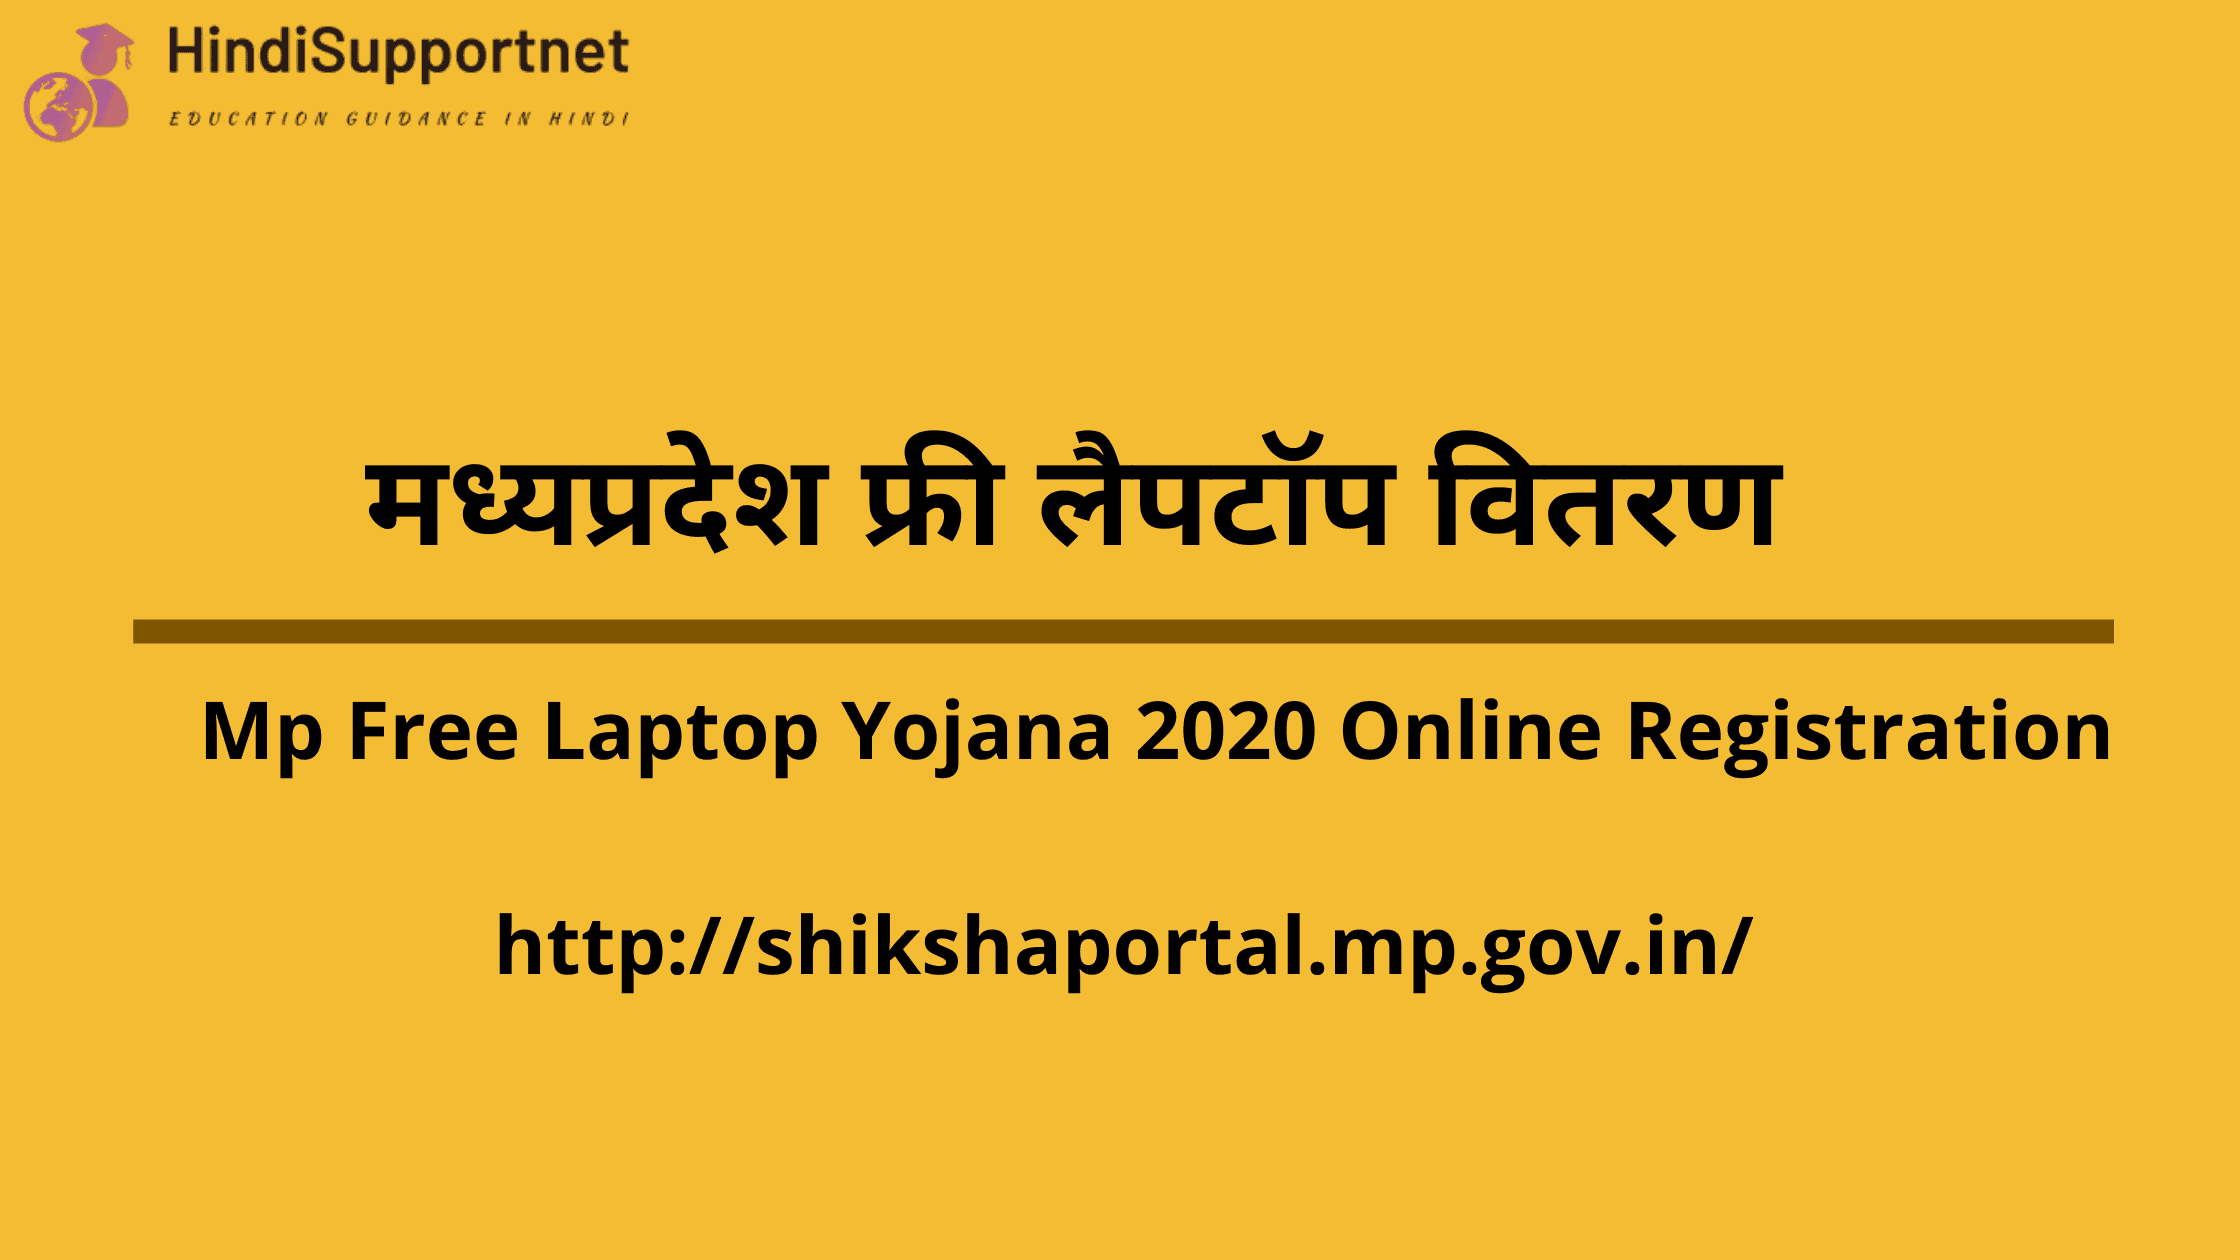 Madhypradesh Free Laptop Yojana Registration